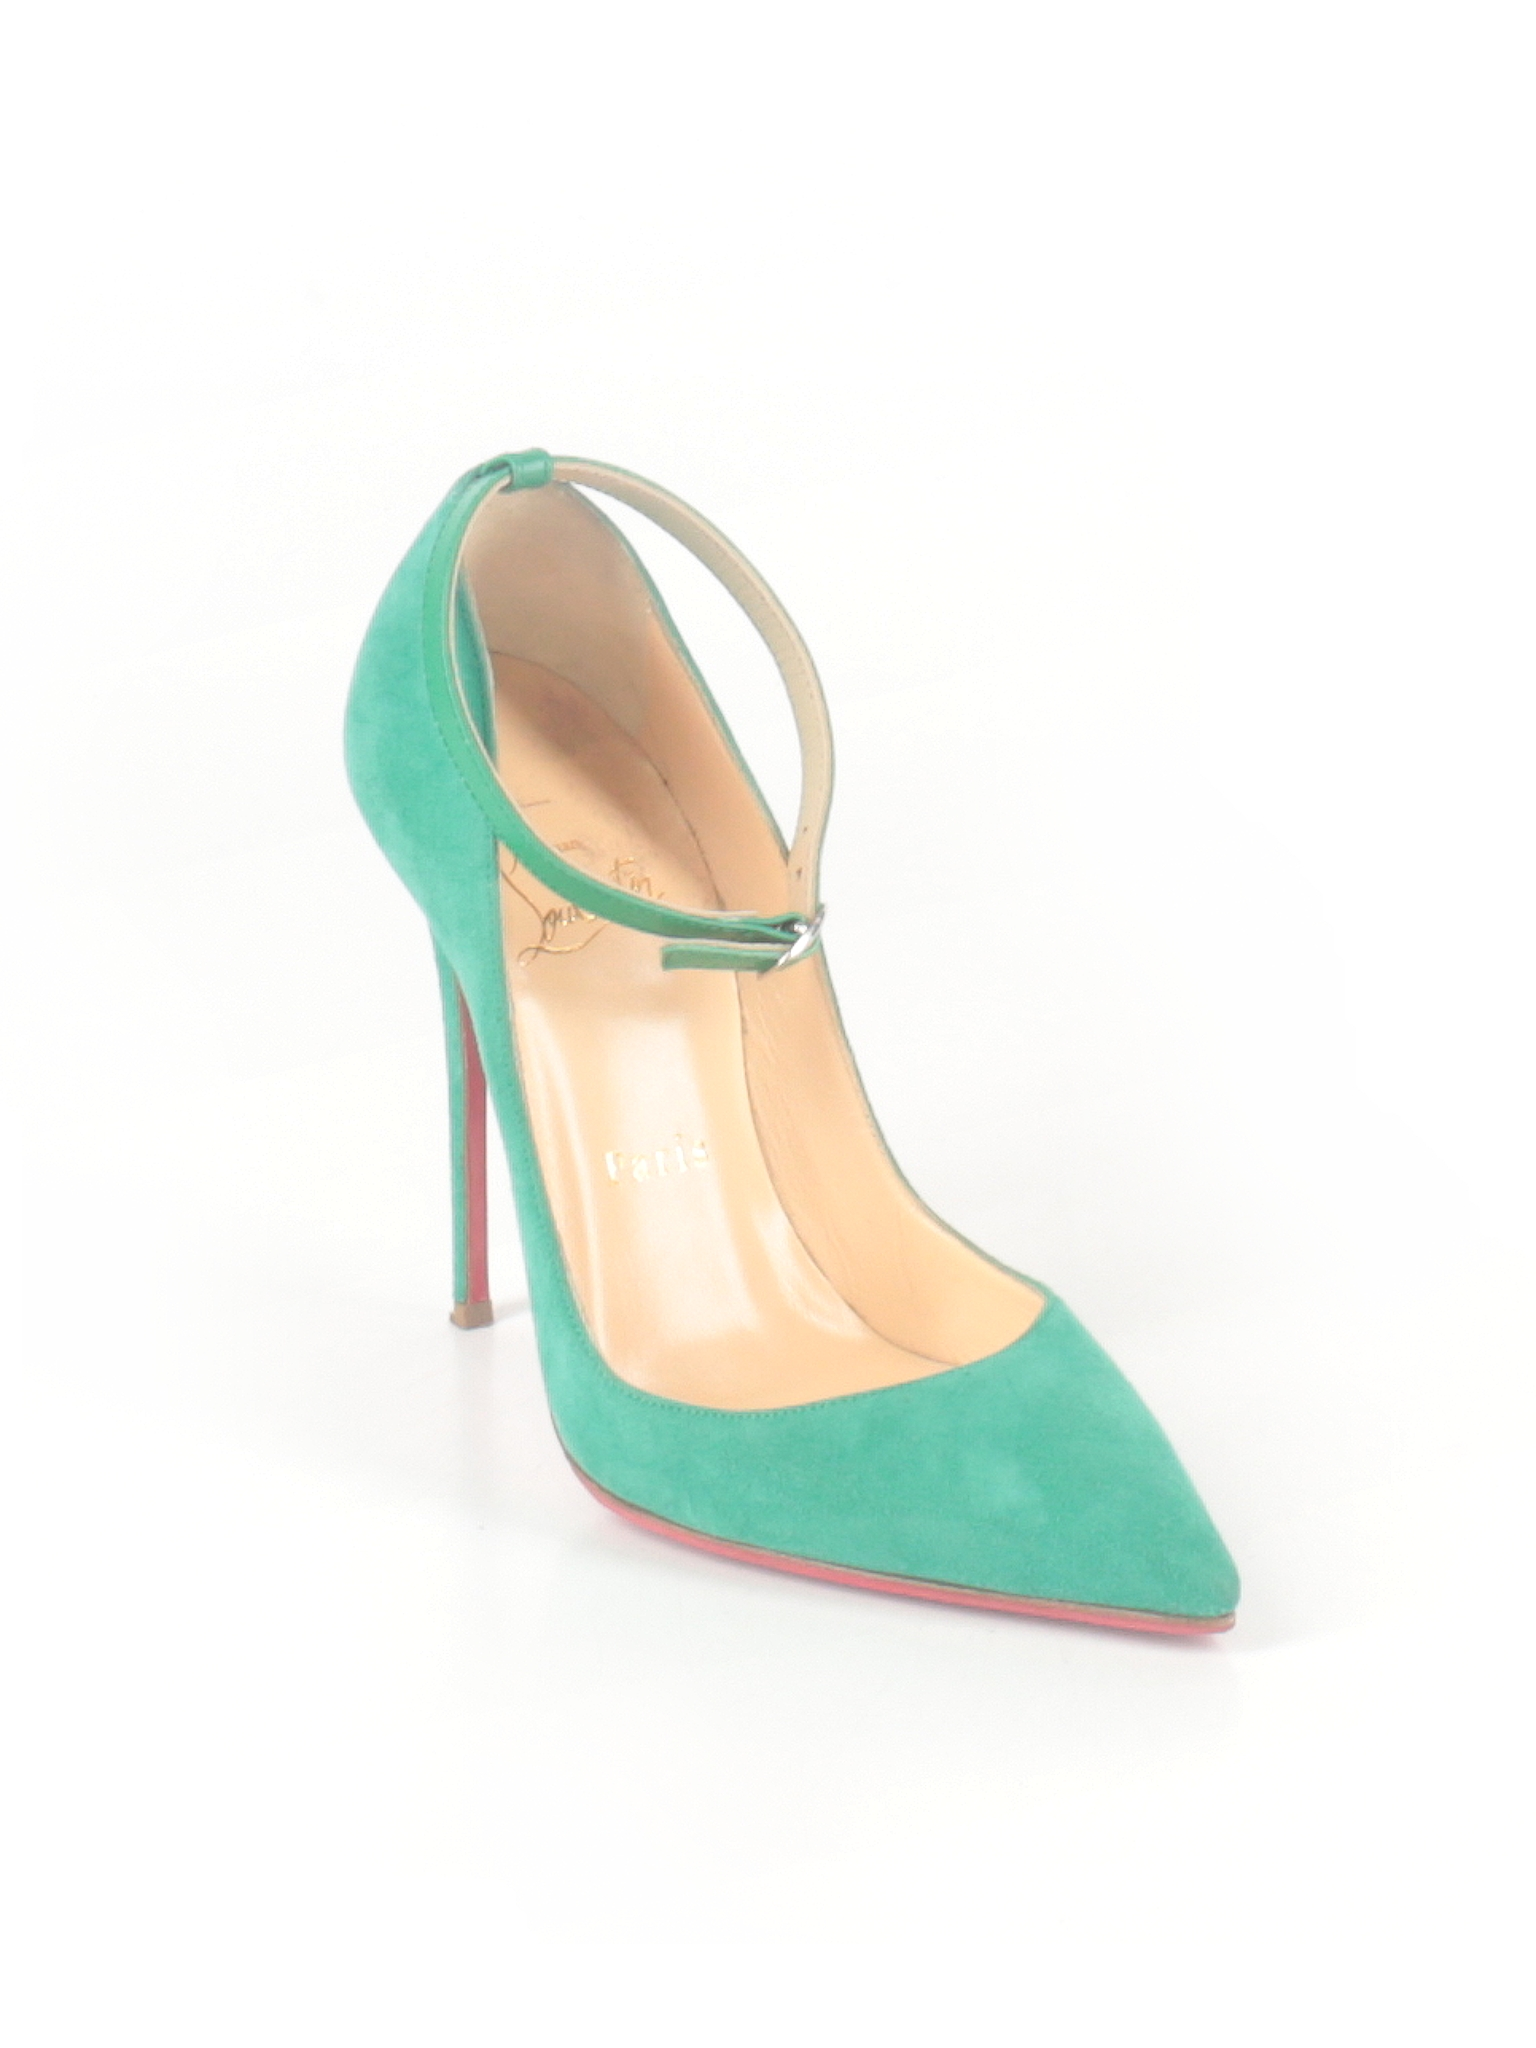 meet 7d9ab 47e6f Christian Louboutin Heels: Size 5 1/2 Teal Women's Clothing ...